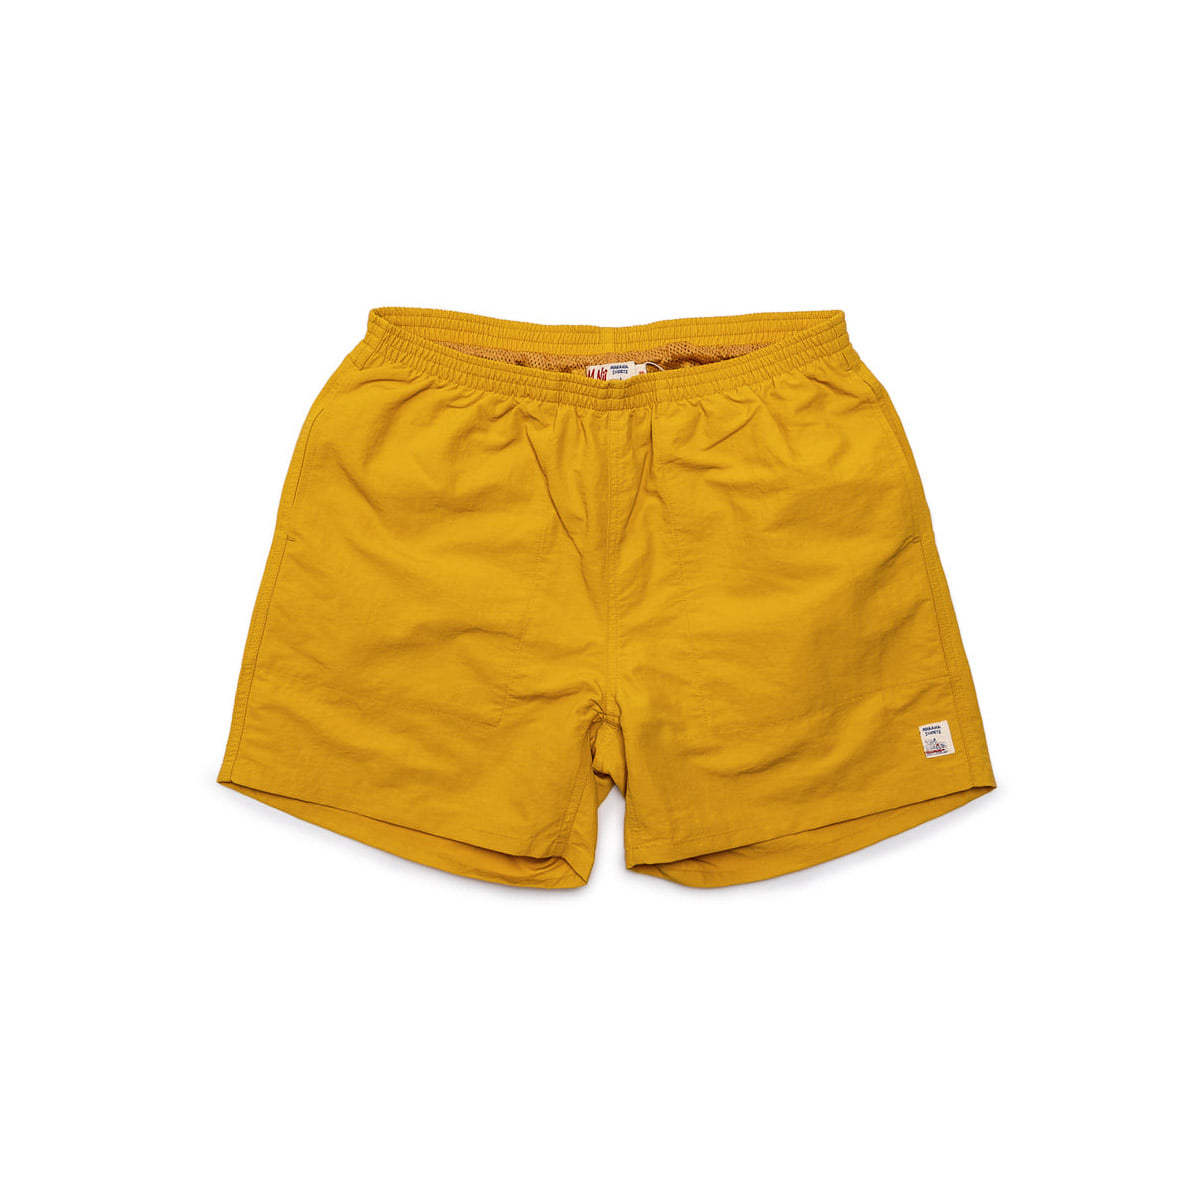 [M.Nii] FATIGUE SHORTS 'YELLOW'